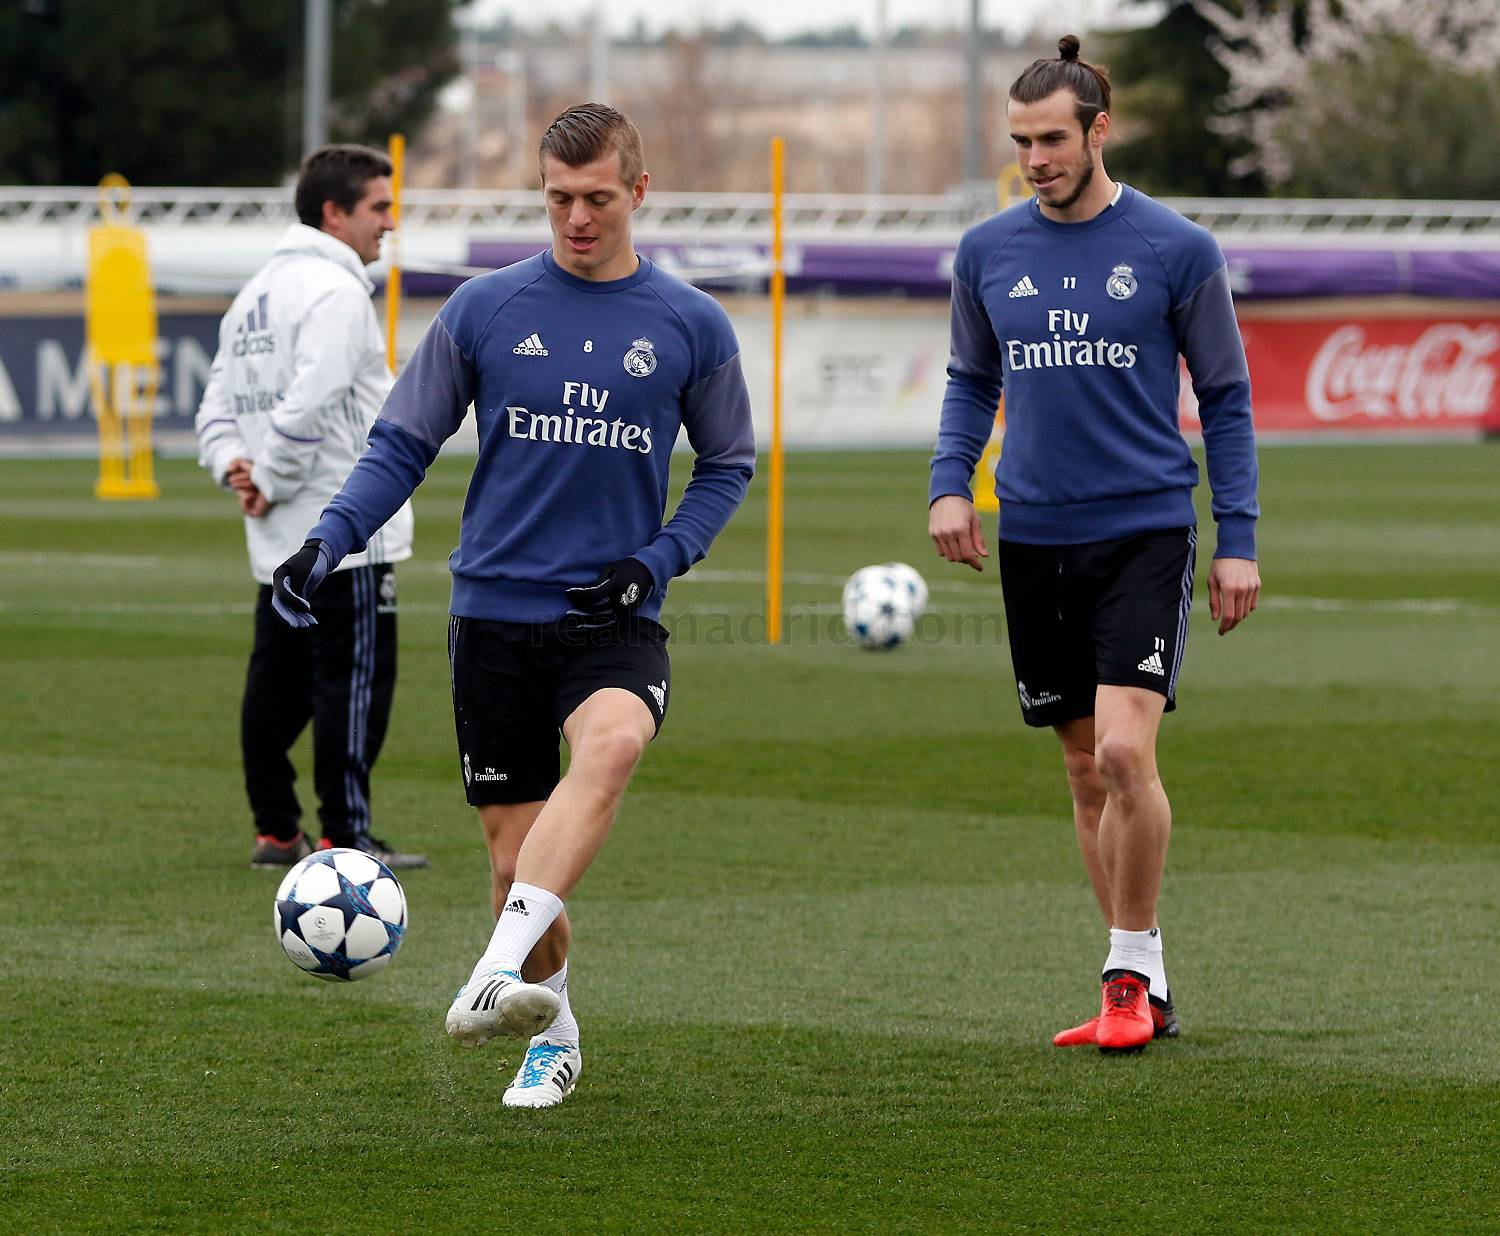 Real Madrid - Entrenamiento del Real Madrid - 05-03-2017